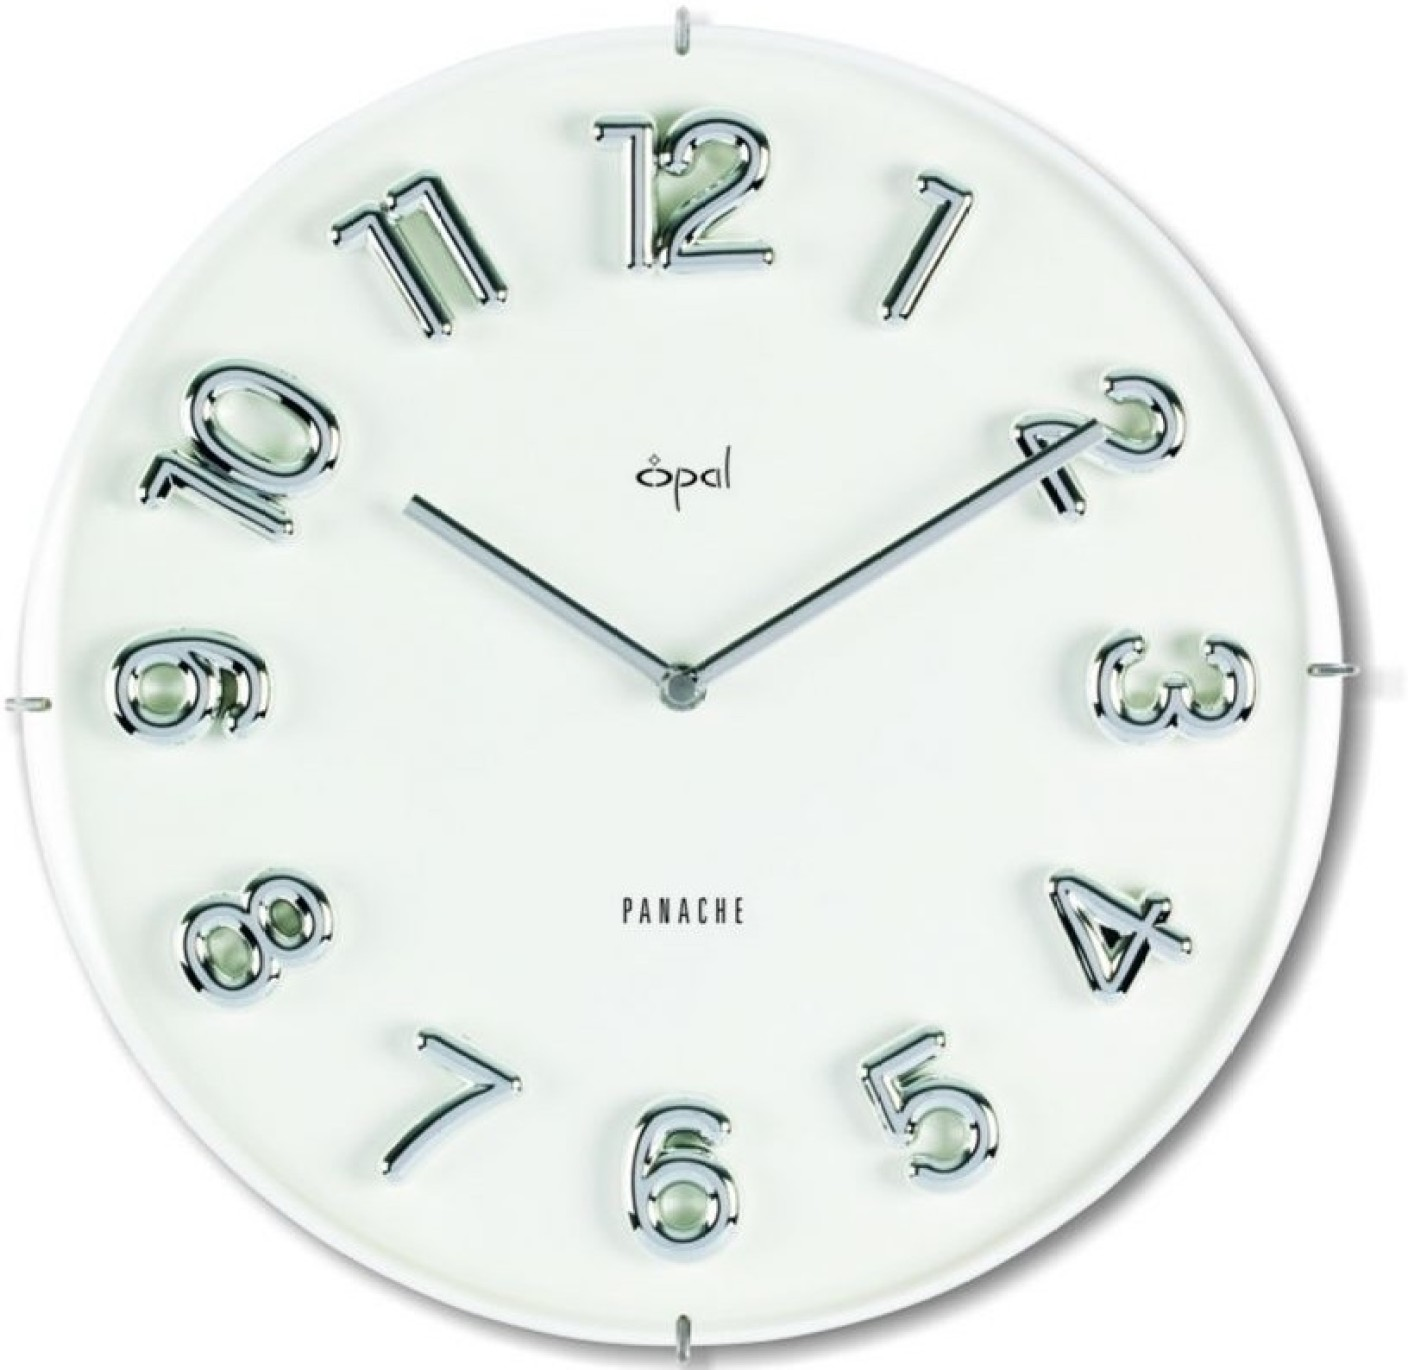 Opal analog wall clock price in india buy opal analog wall clock opal analog wall clock wishlist amipublicfo Choice Image